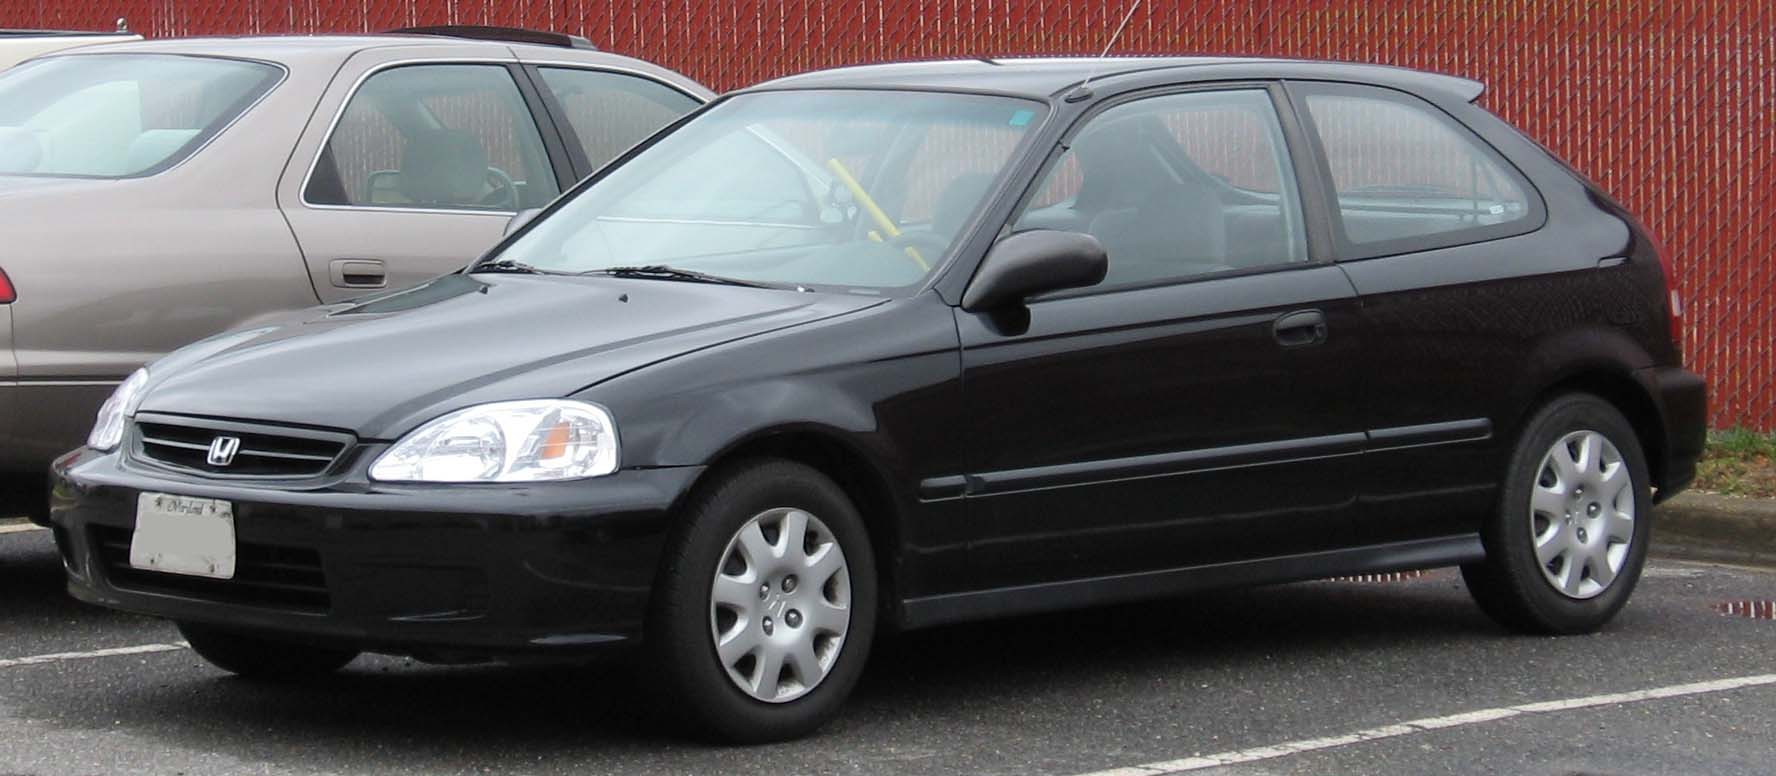 Honda Civic 2000 Photo - 1